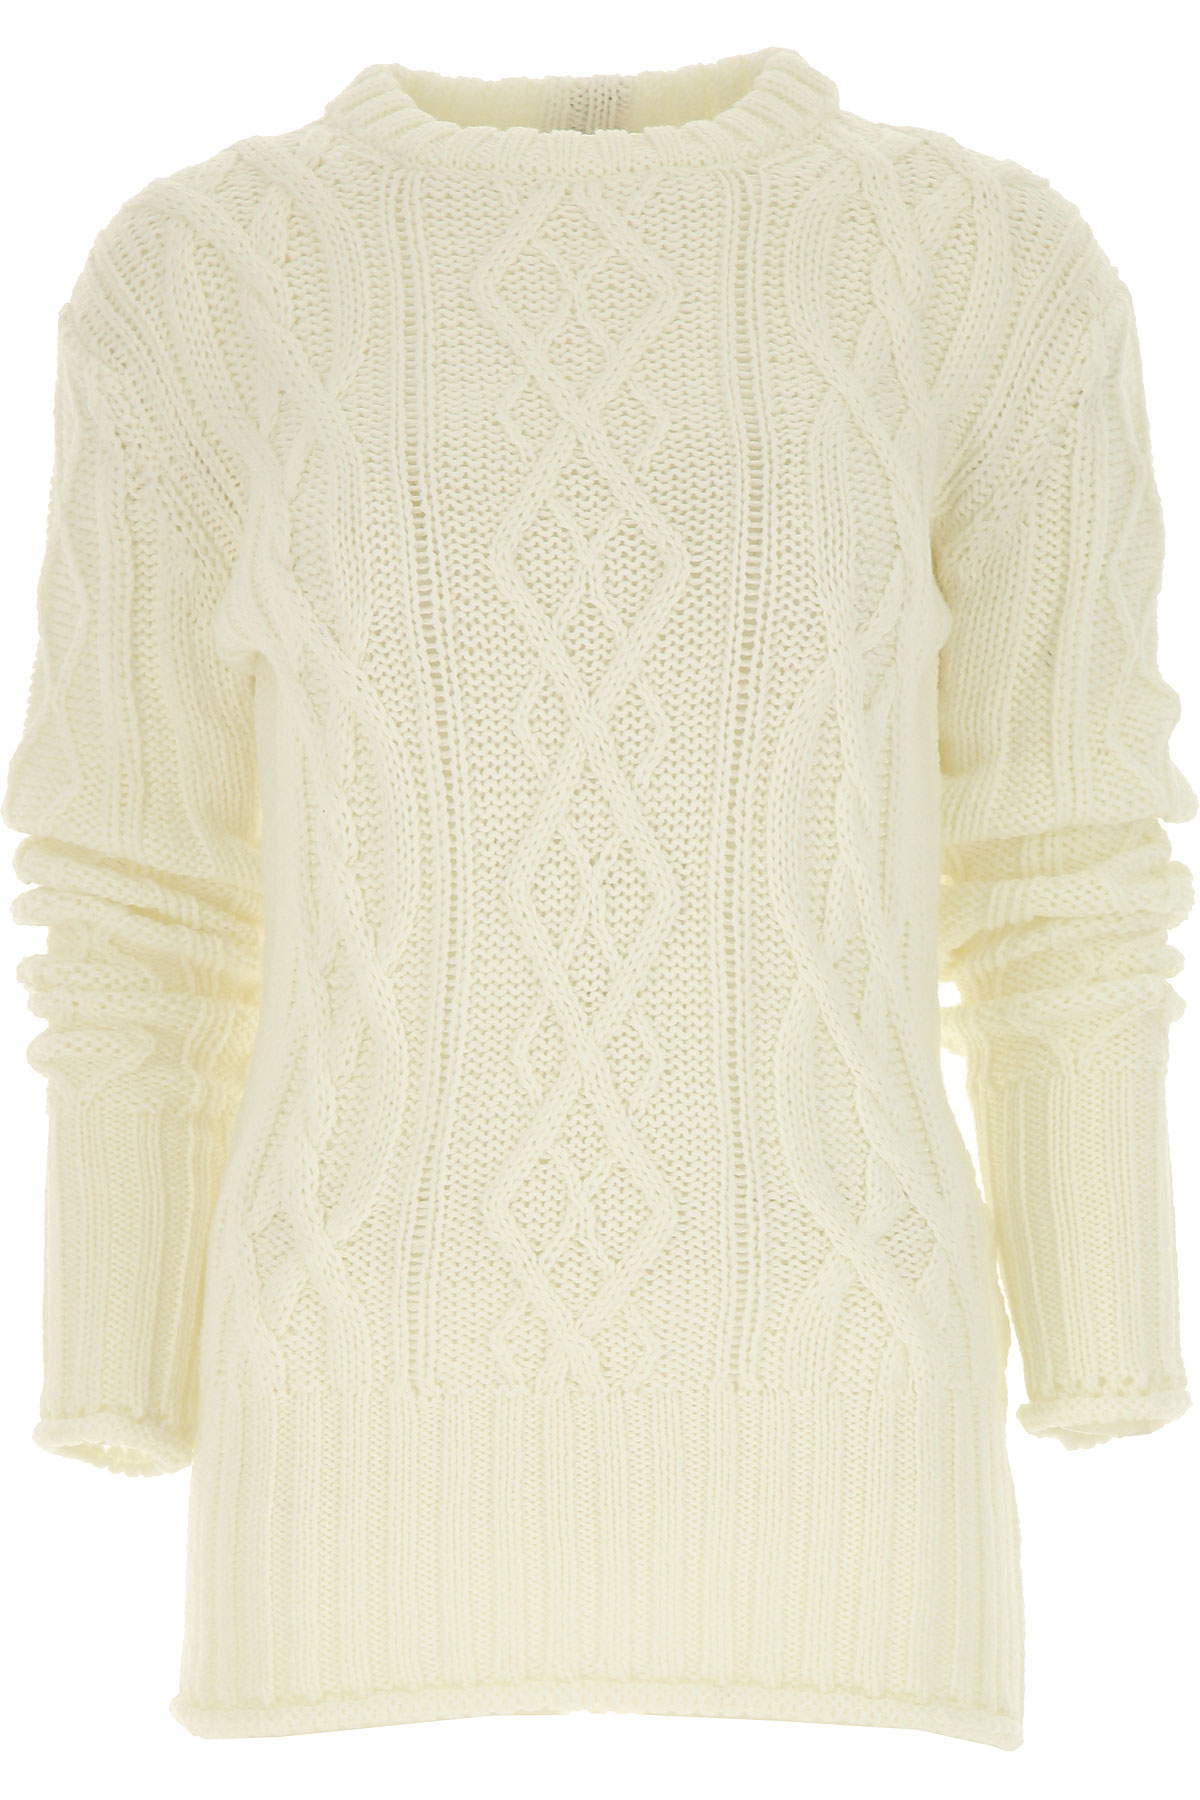 THOM BROWNE Sweater for Women Jumper On Sale, White, Wool, 2019, 4 6